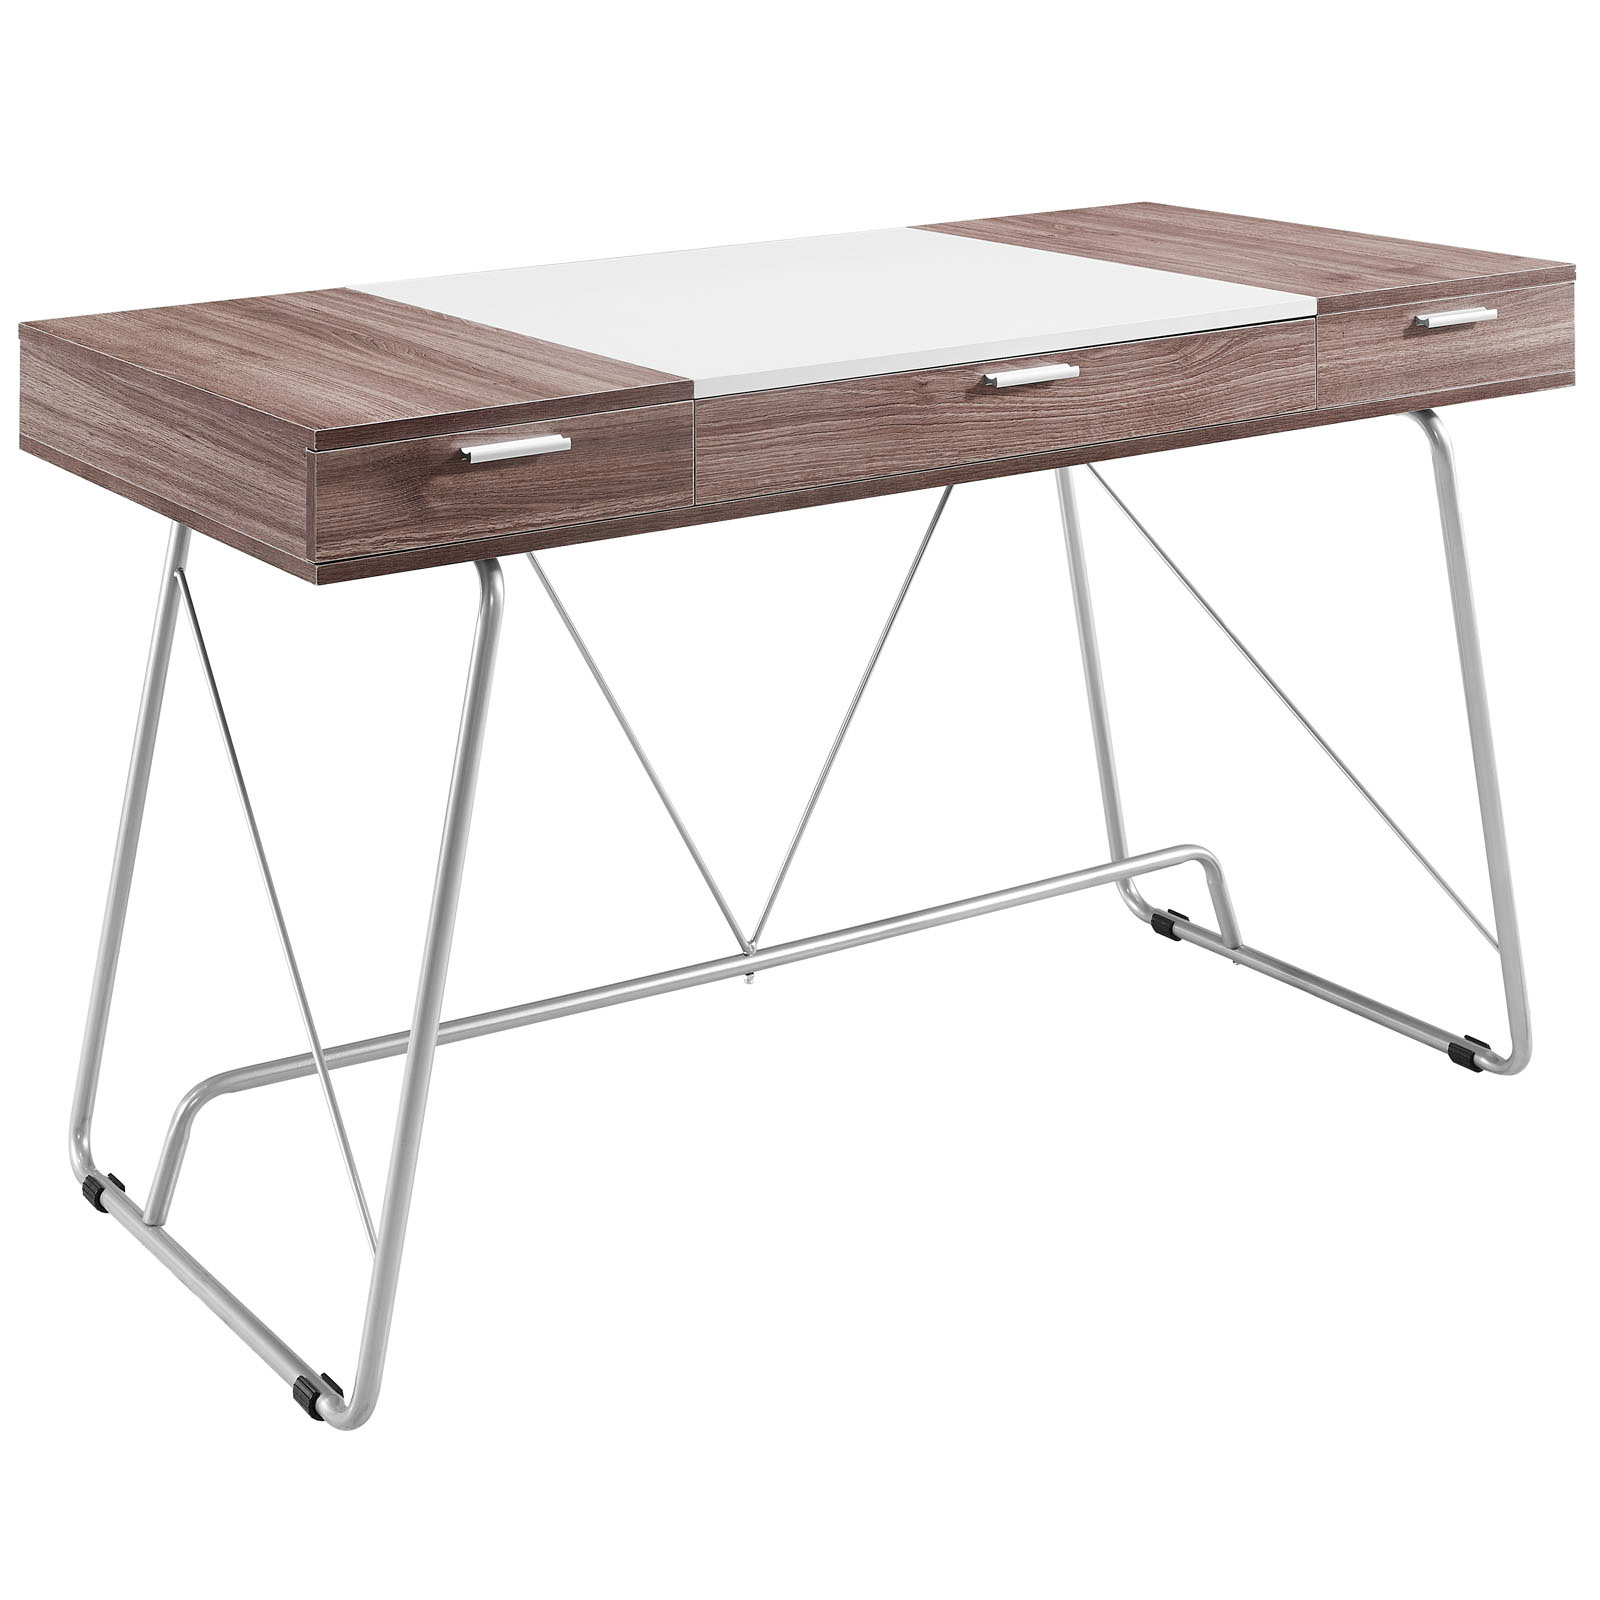 Cool office furniture space saving desk computer desk for Cool desks for small spaces